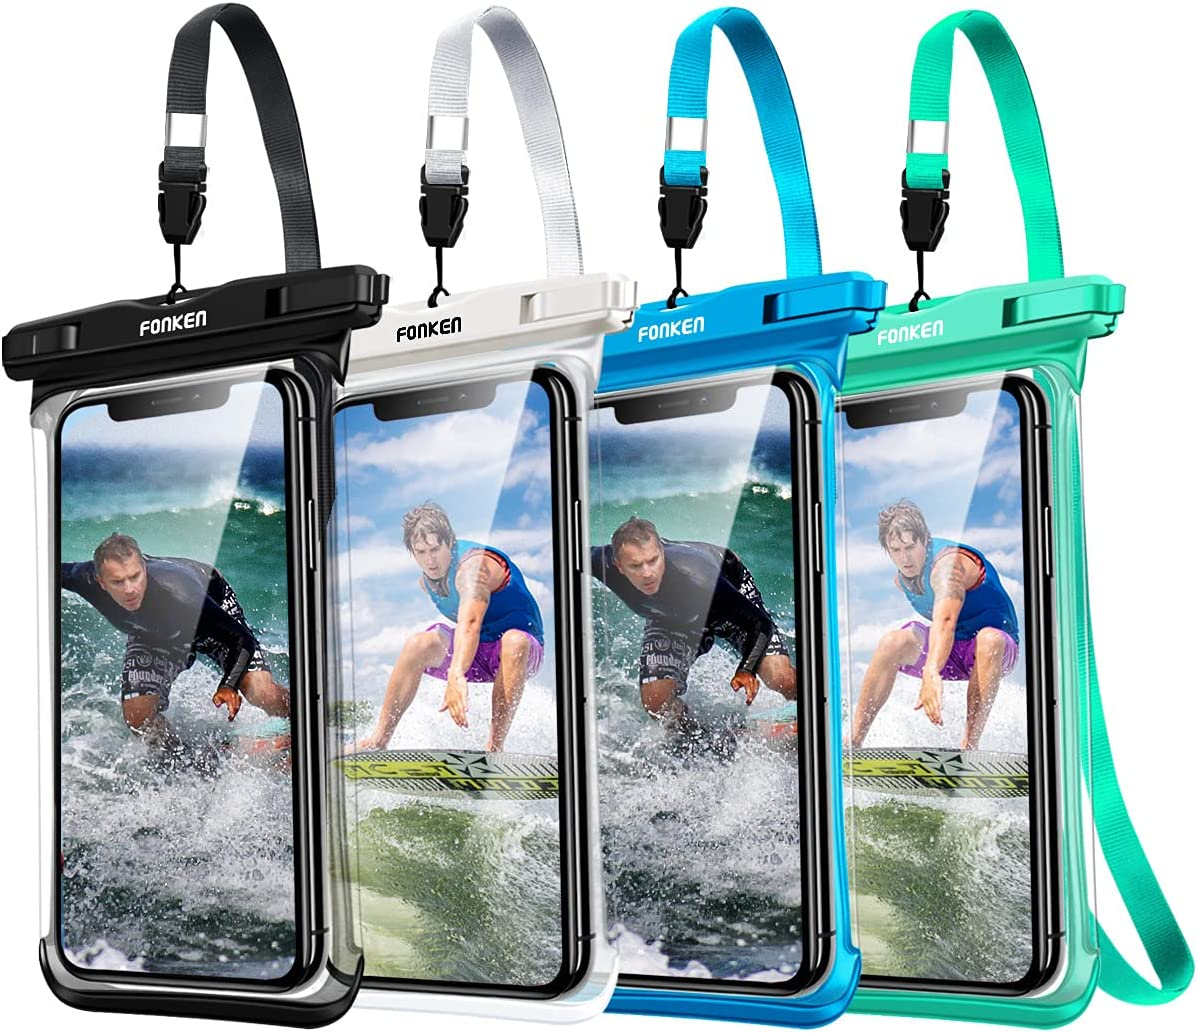 Waterproof Phone Pouch,FONKEN Waterproof Phone Case IPX8 Cell Phone Dry Bag (4 Pack) Underwater Phone Pouches Compatible with iPhone 12 Pro Max 11 XS Max XR 8 7 Galaxy s20 s10/Note 9 Up to 7.0